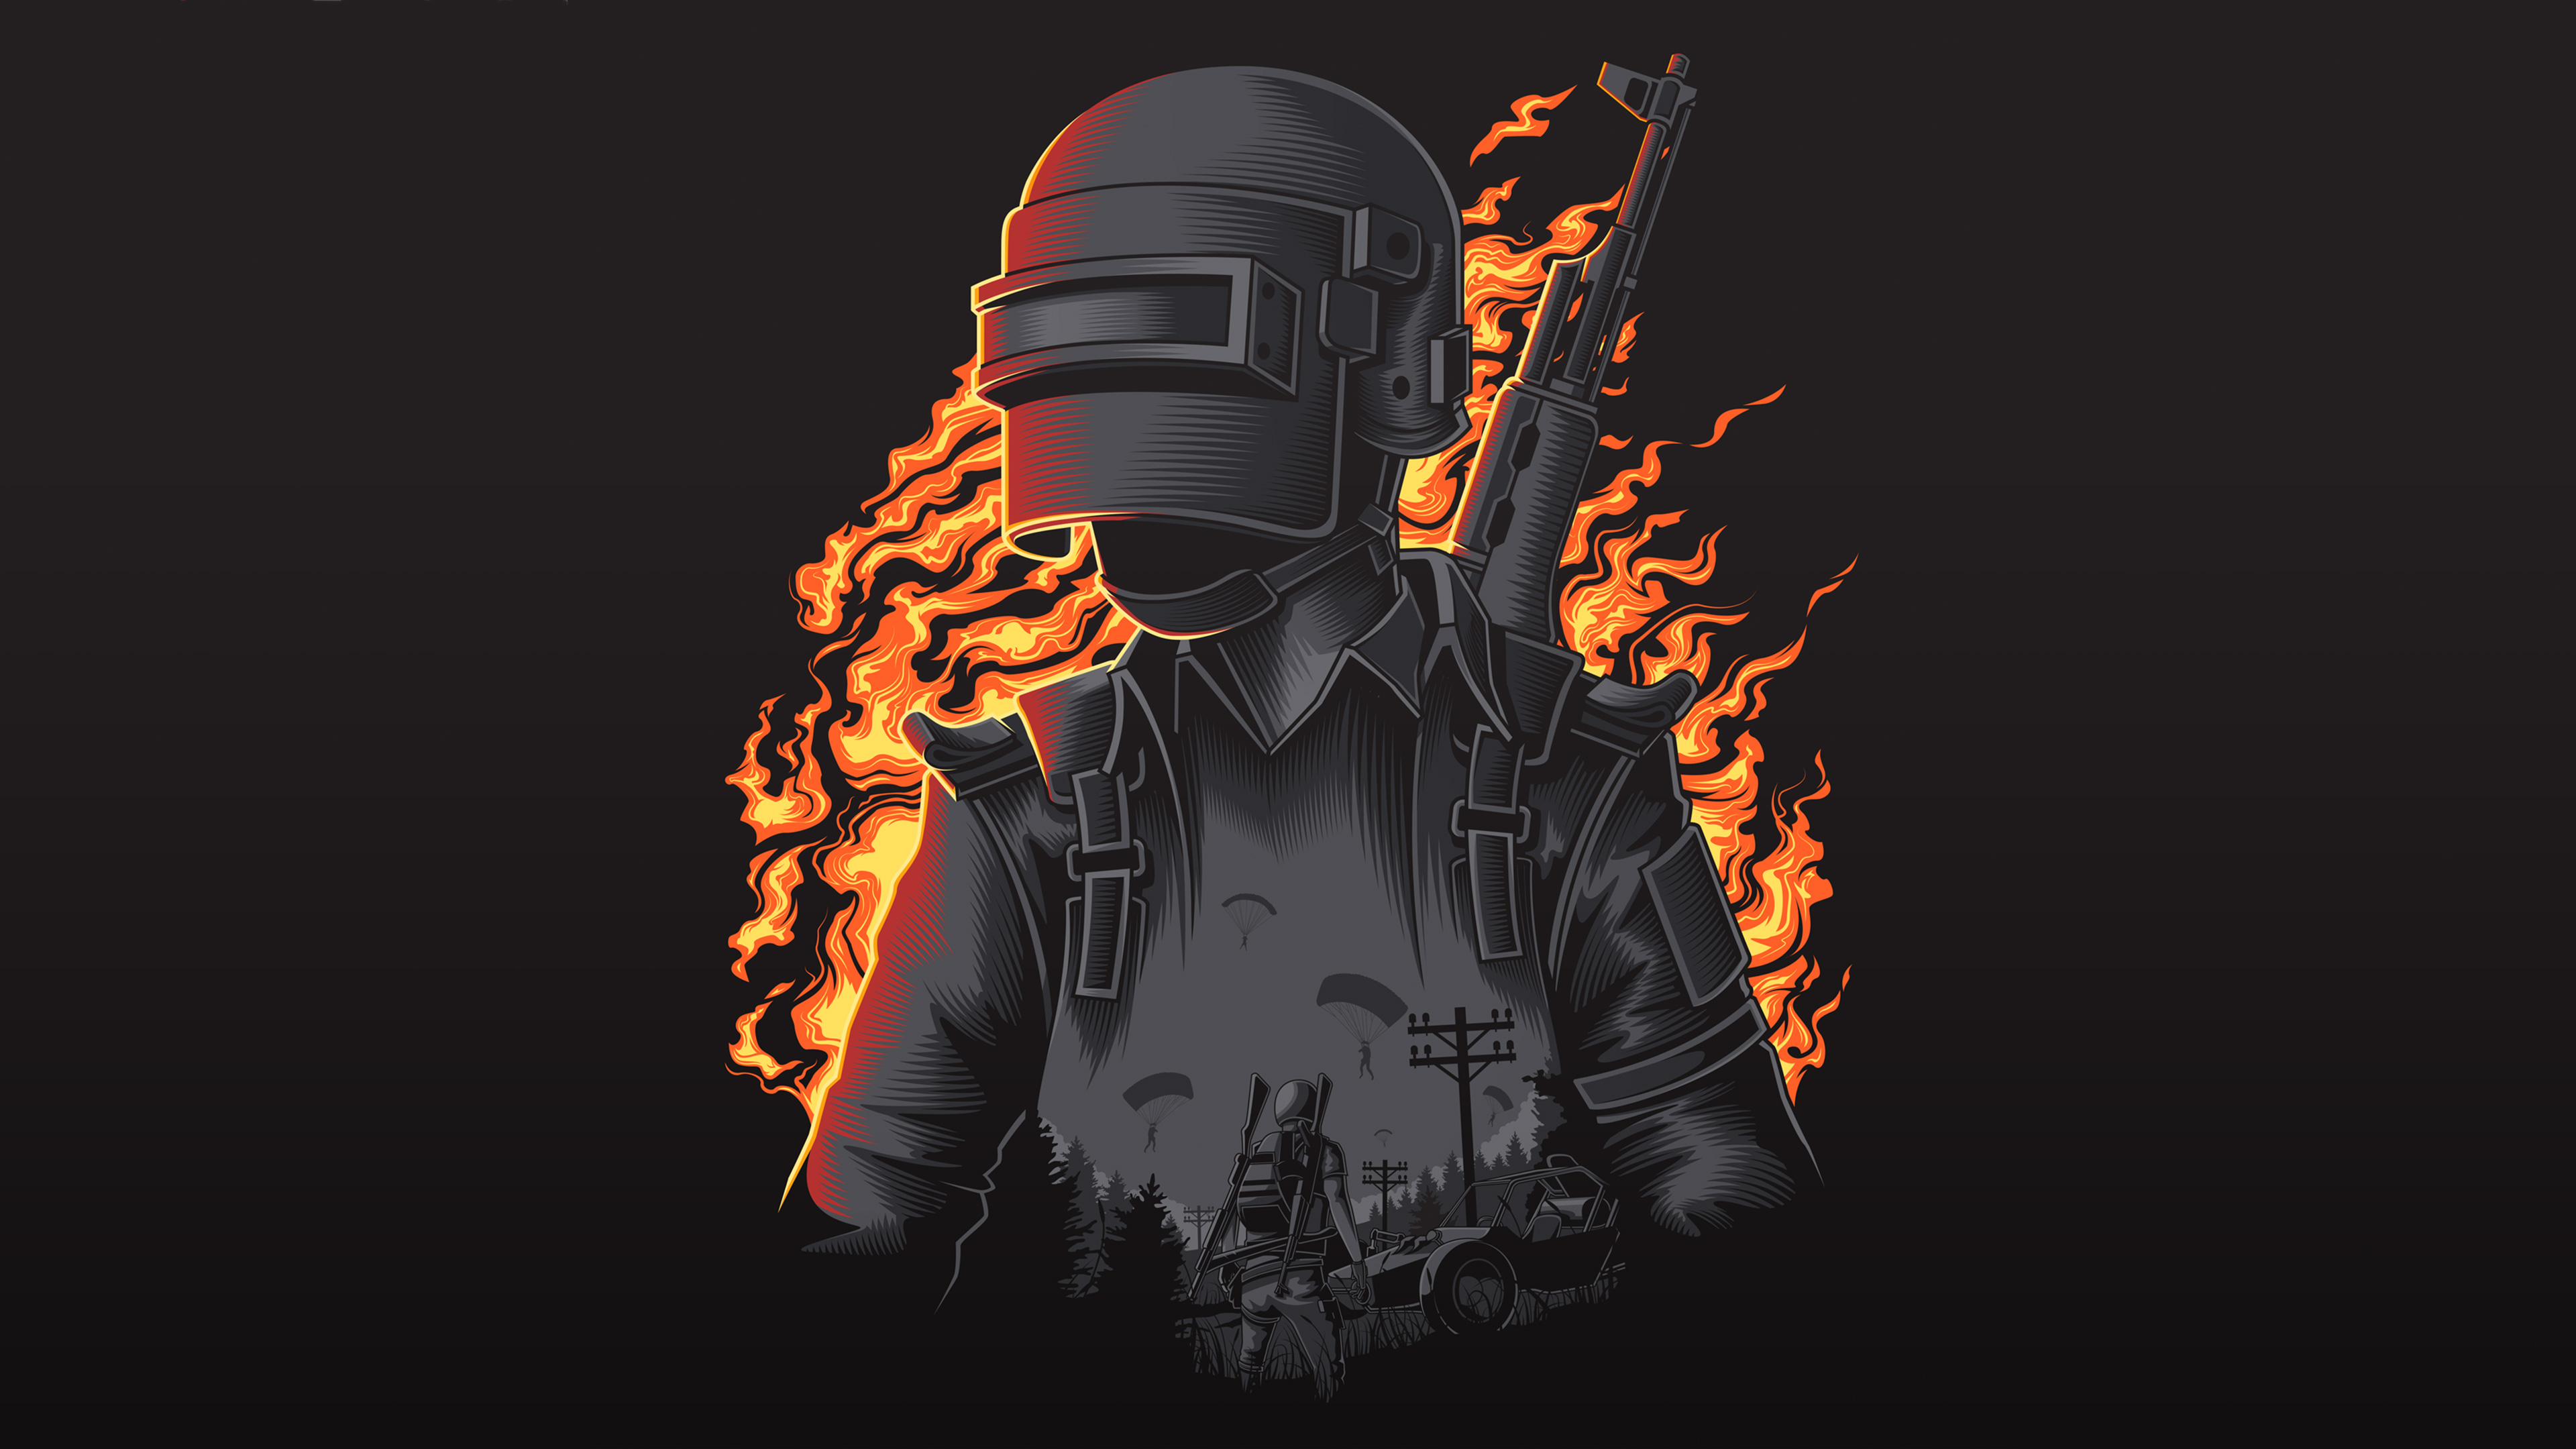 Pubg Helmet Wallpaper 4k: PUBG Wallpaper 4K/HD Of 2019 Download